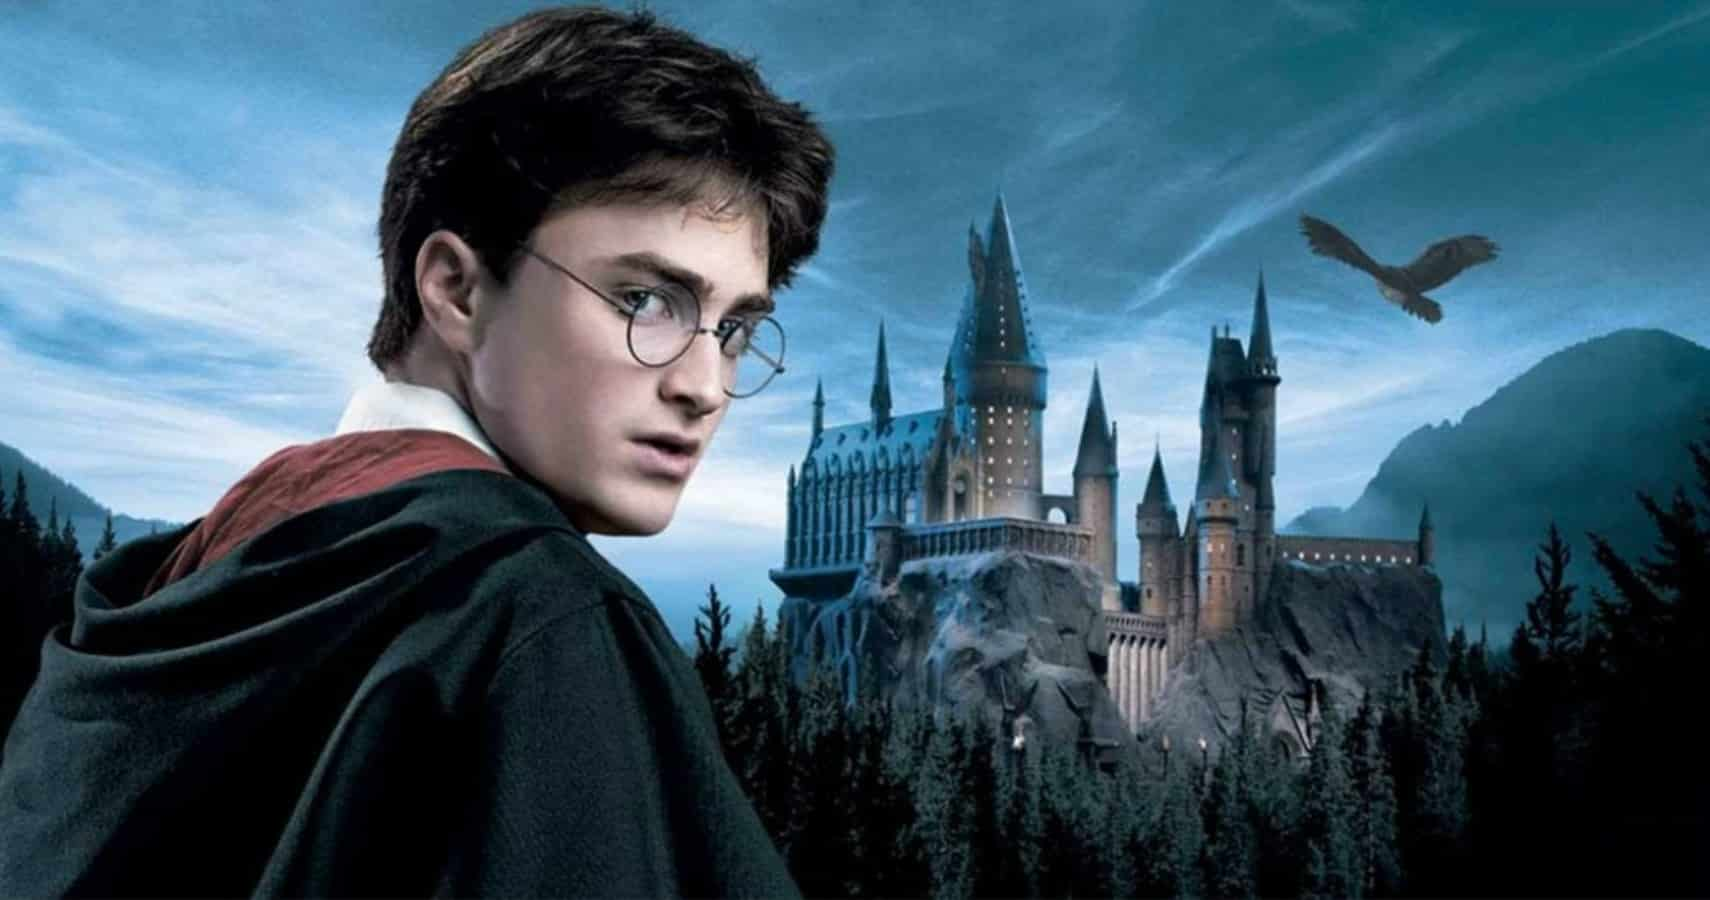 harry potter movies are headed back to theaters